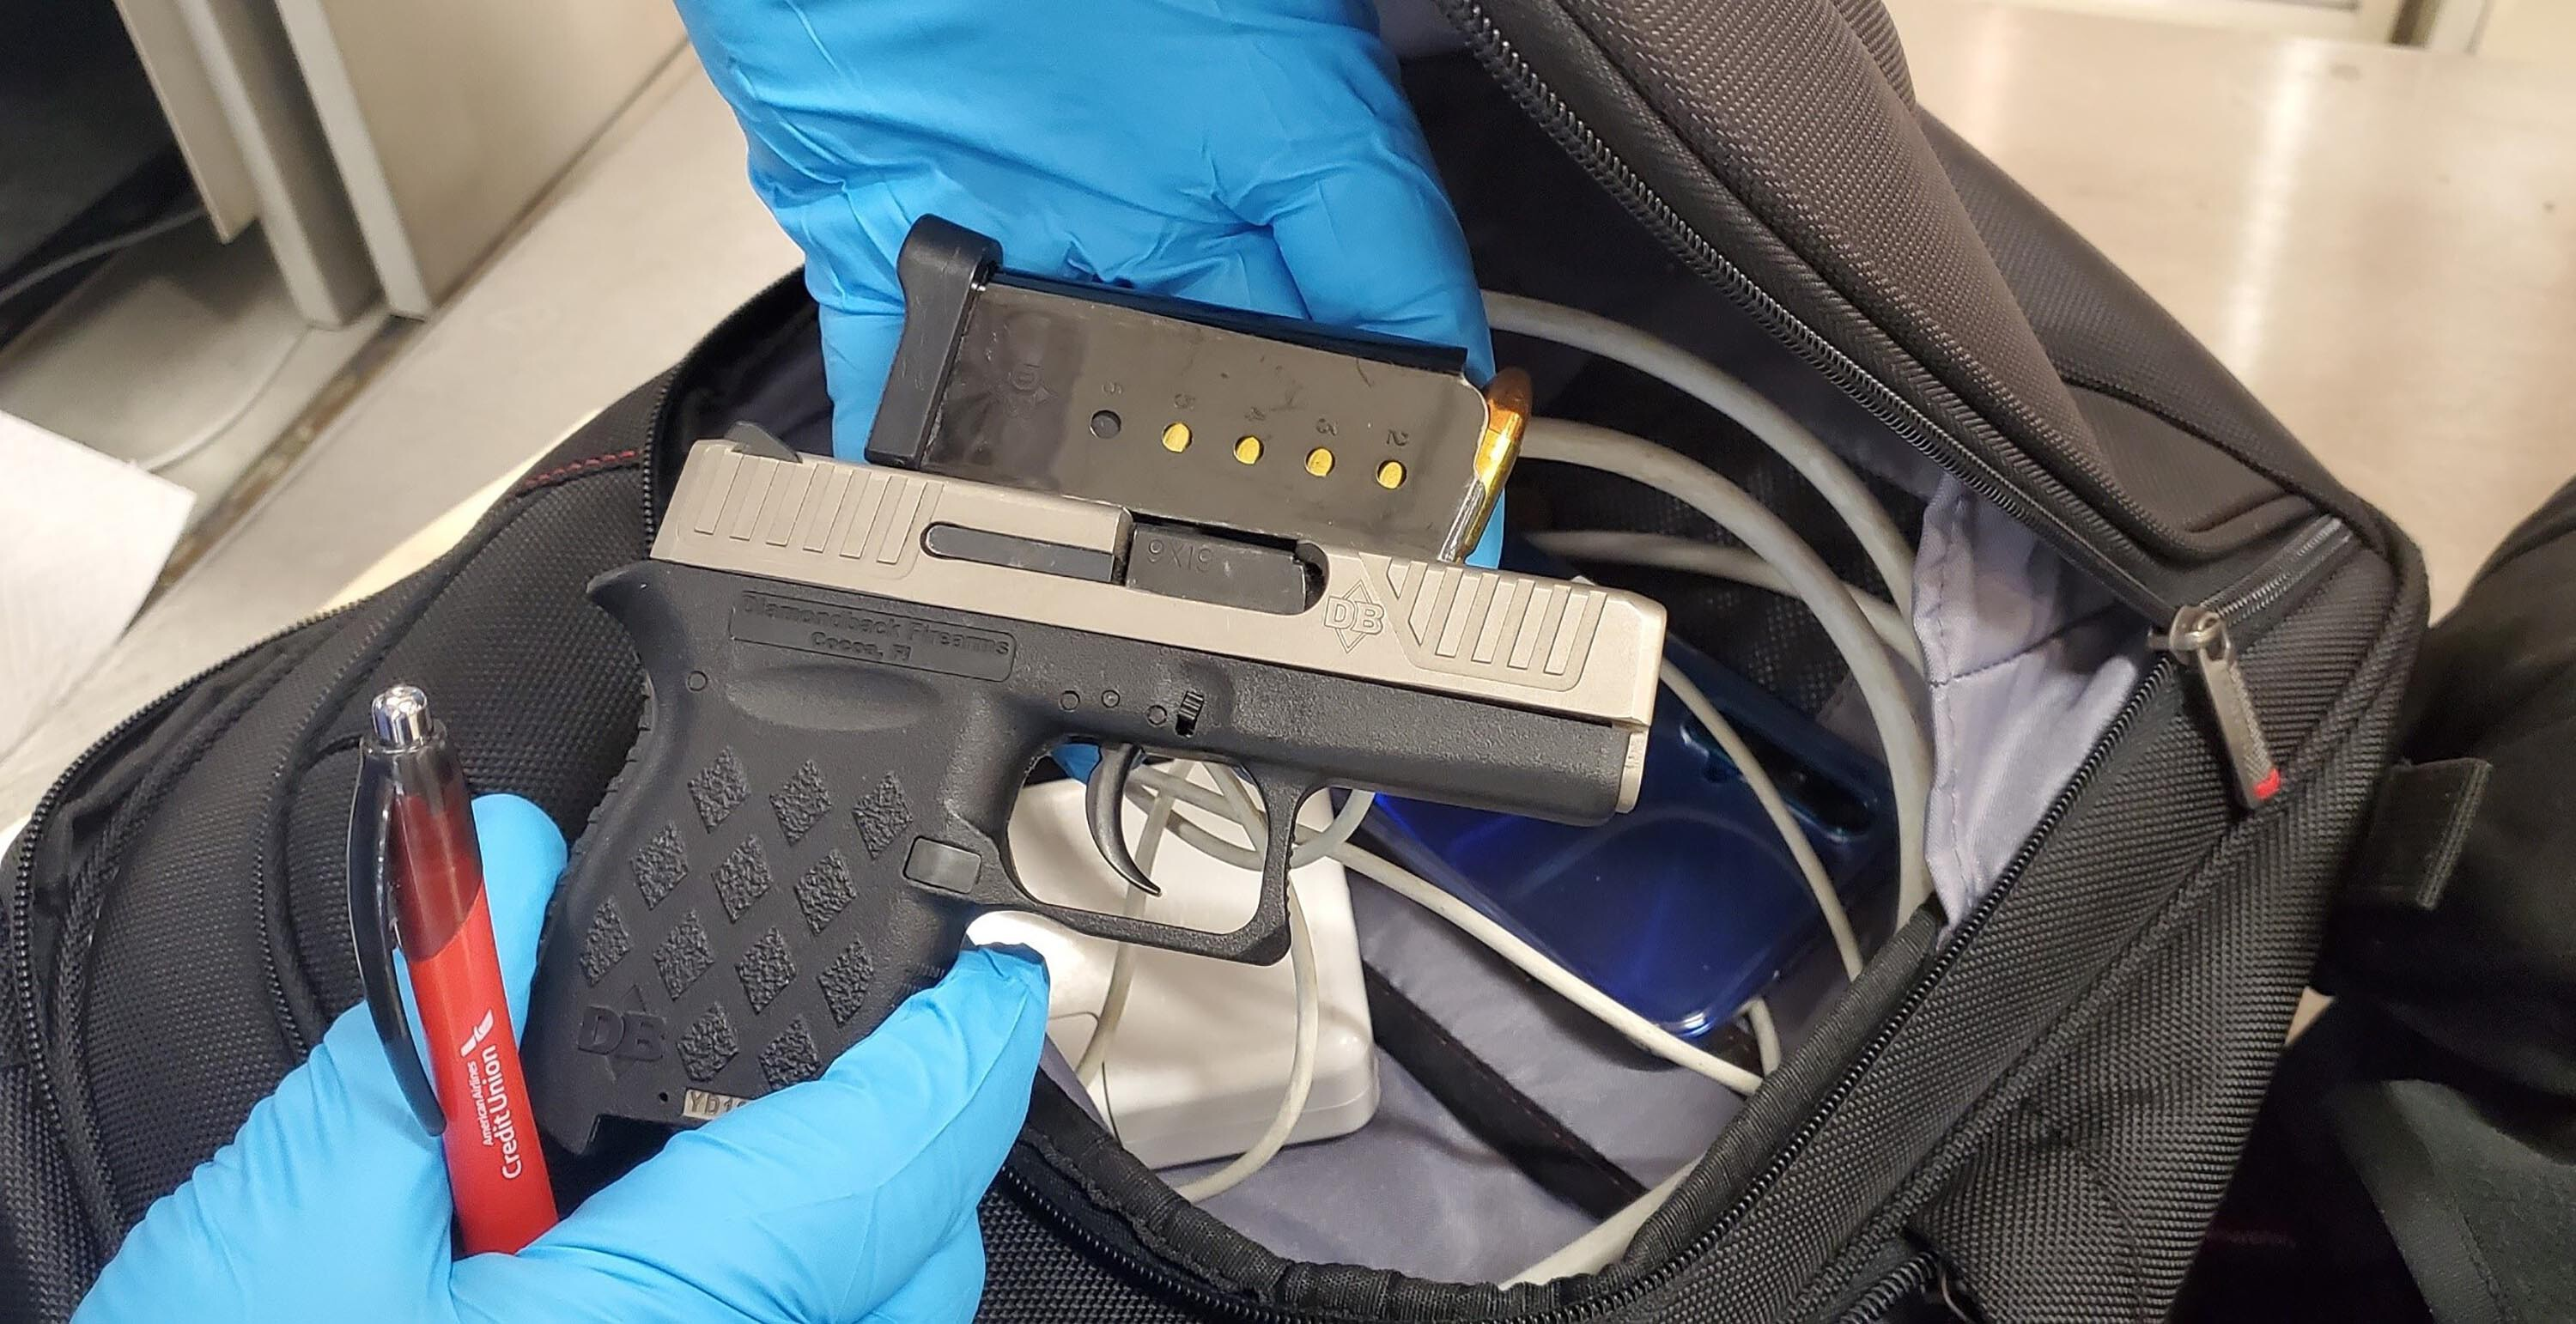 'Huge problem': Passengers are bringing a record number of guns to the airport, TSA says